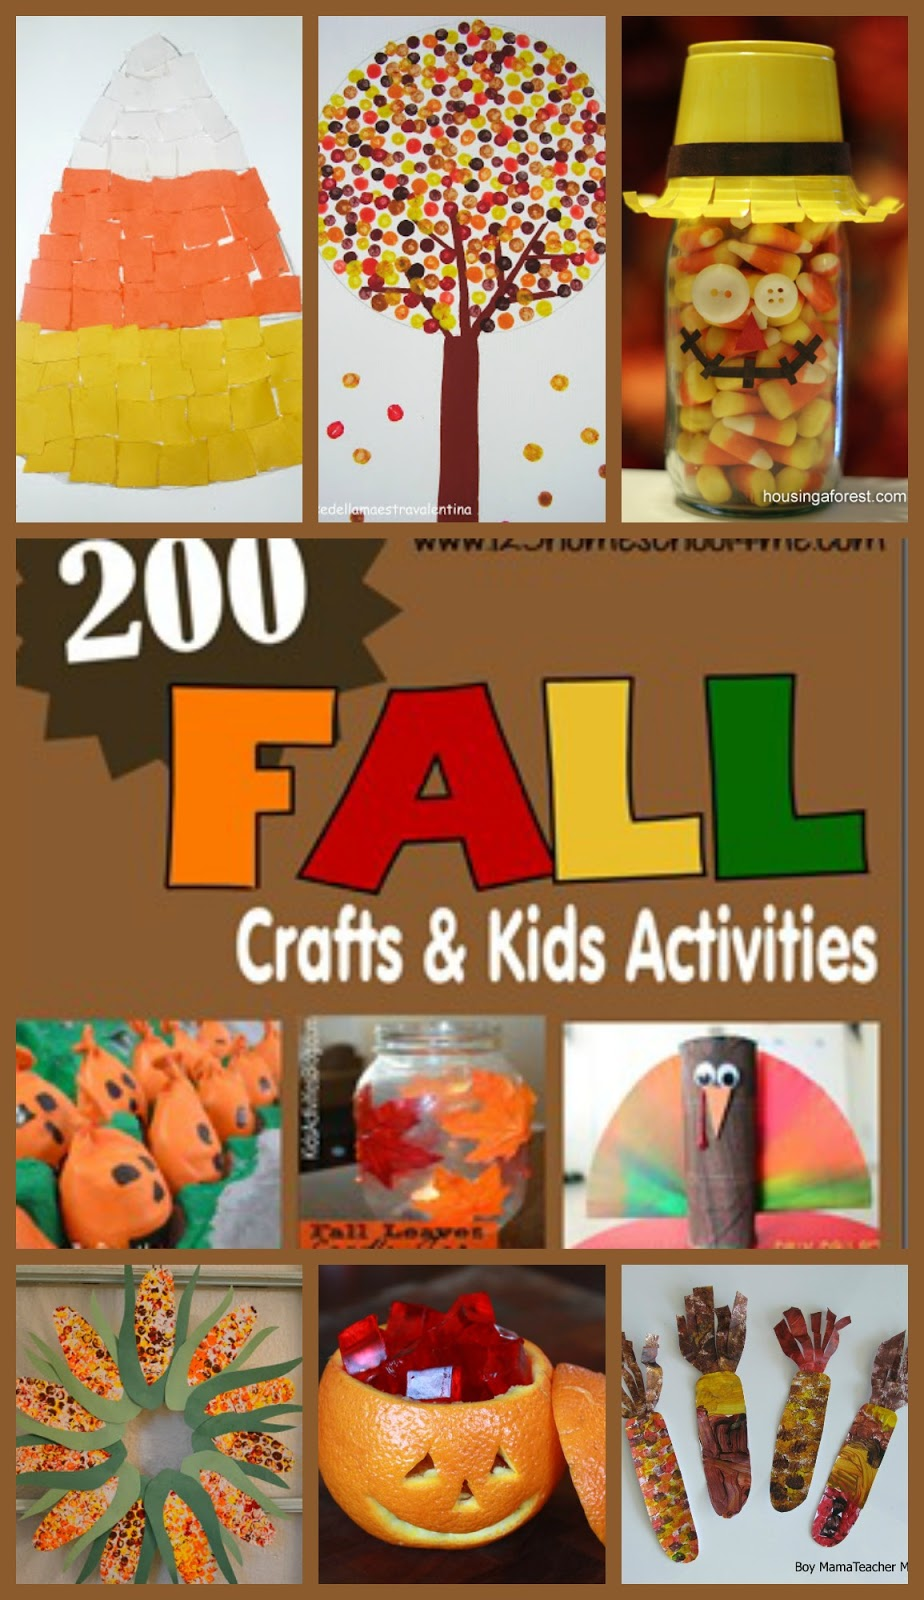 incredible Fall Craft Preschool Part - 13: 200 fall crafts and kids activities